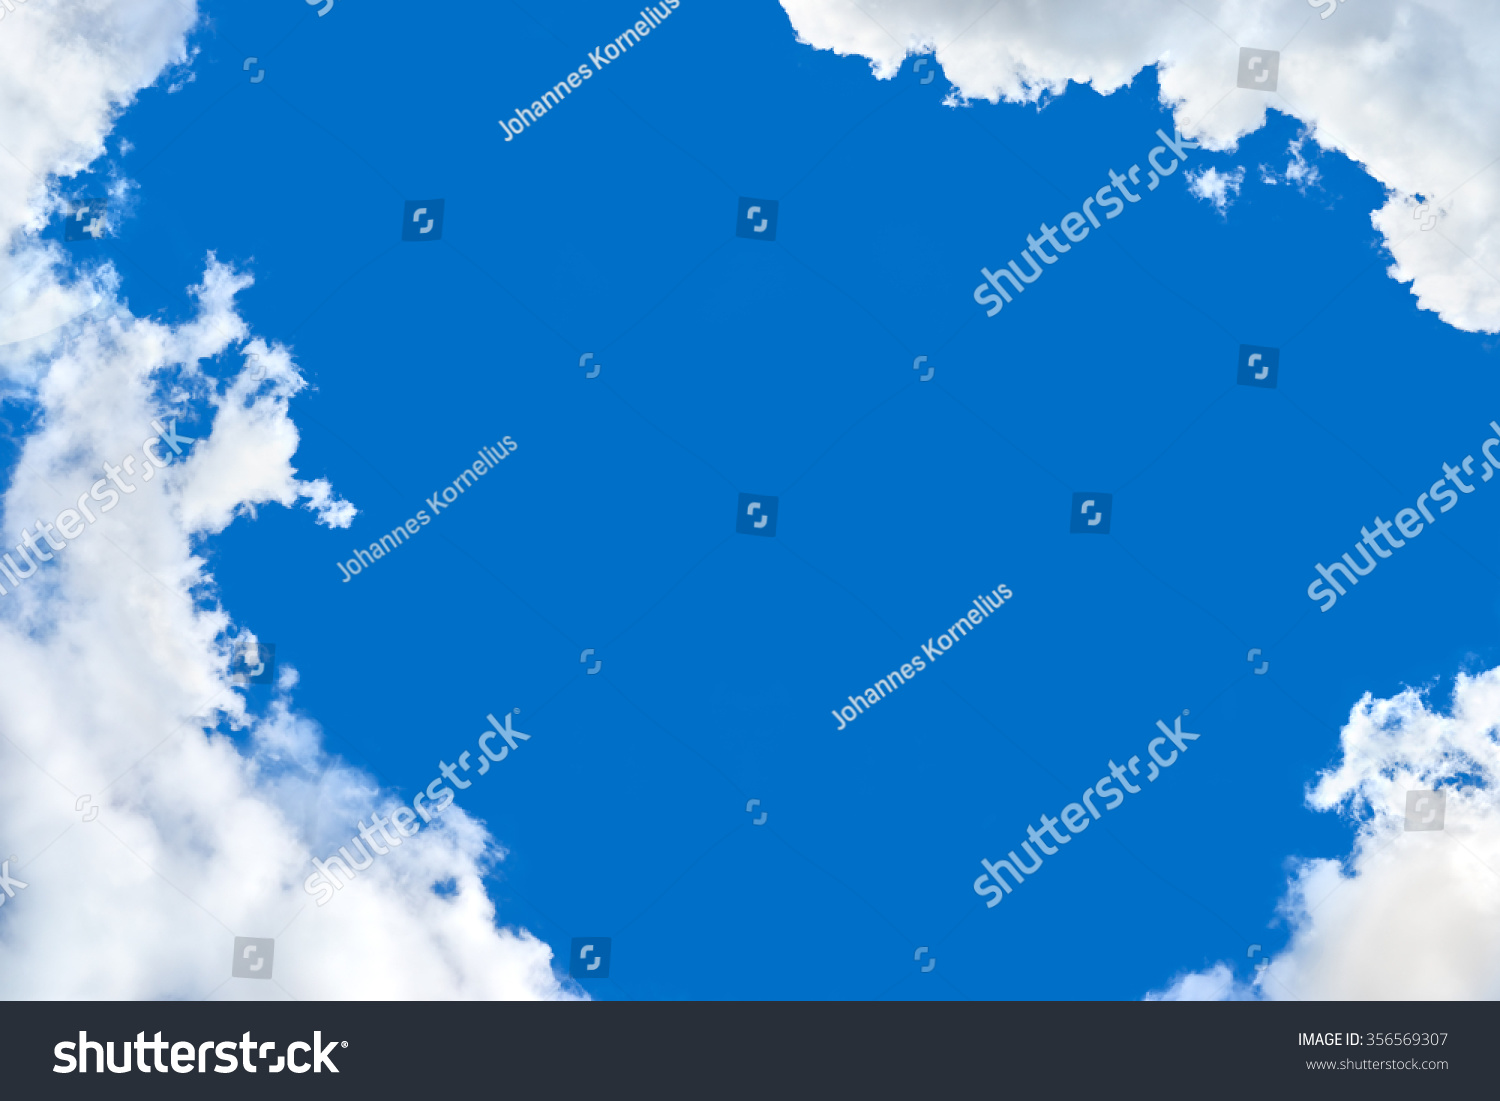 Cloud Frame On Blue Background Stock Photo (Royalty Free) 356569307 ...